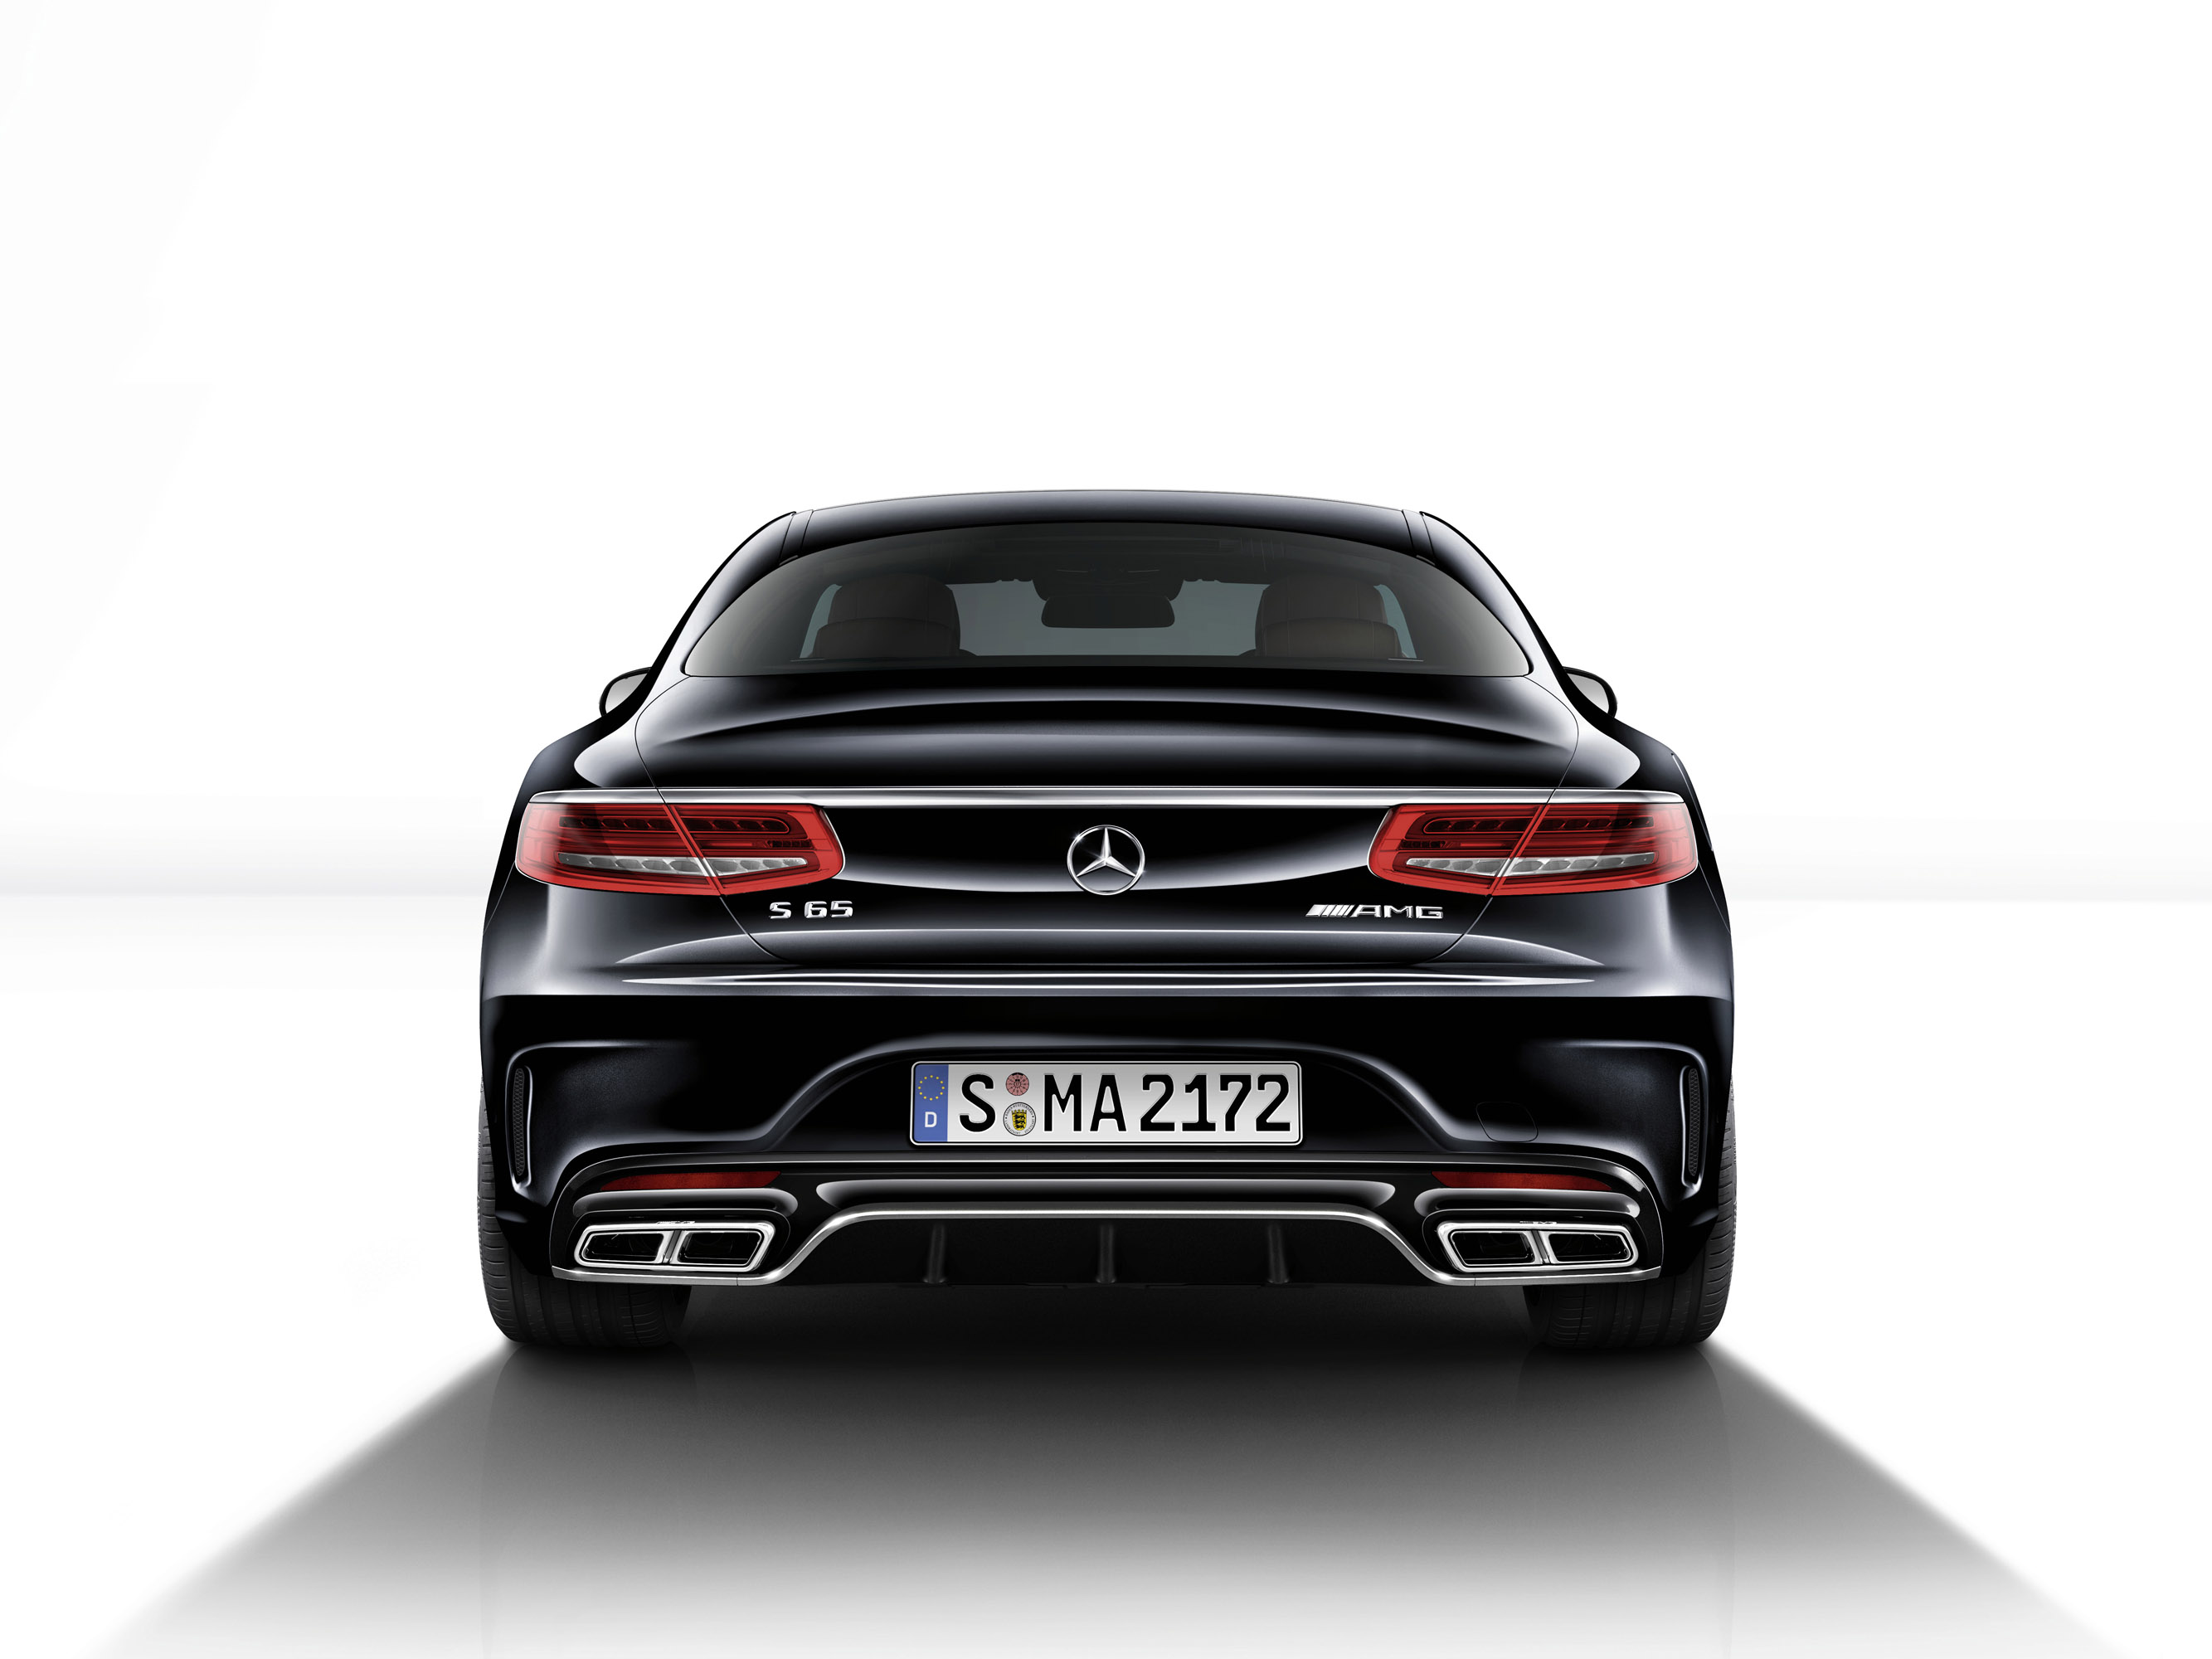 2014 mercedes benz s65 amg coupe picture 105333 for Mercedes benz amg s65